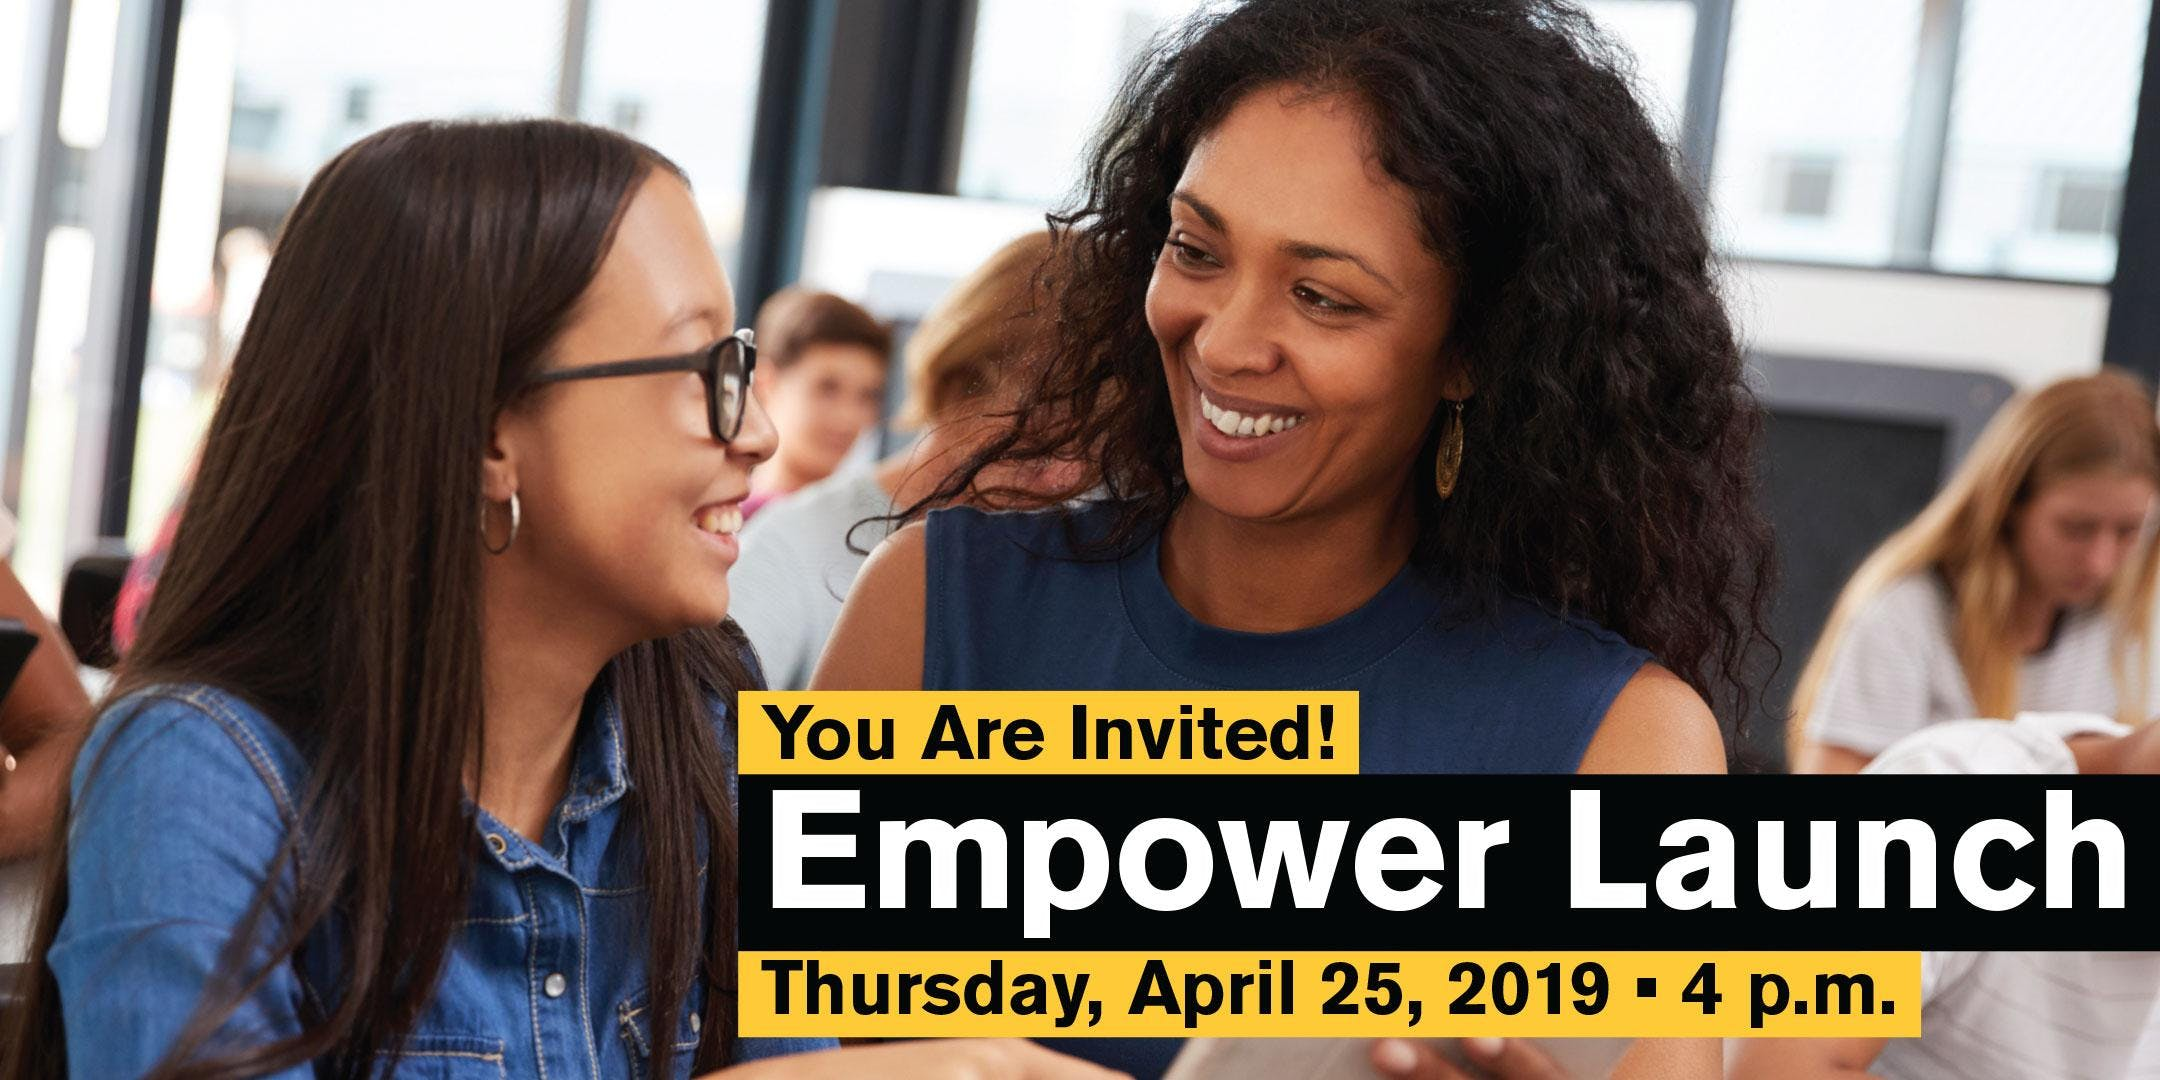 Empower Launch — April 25, 4 p.m.